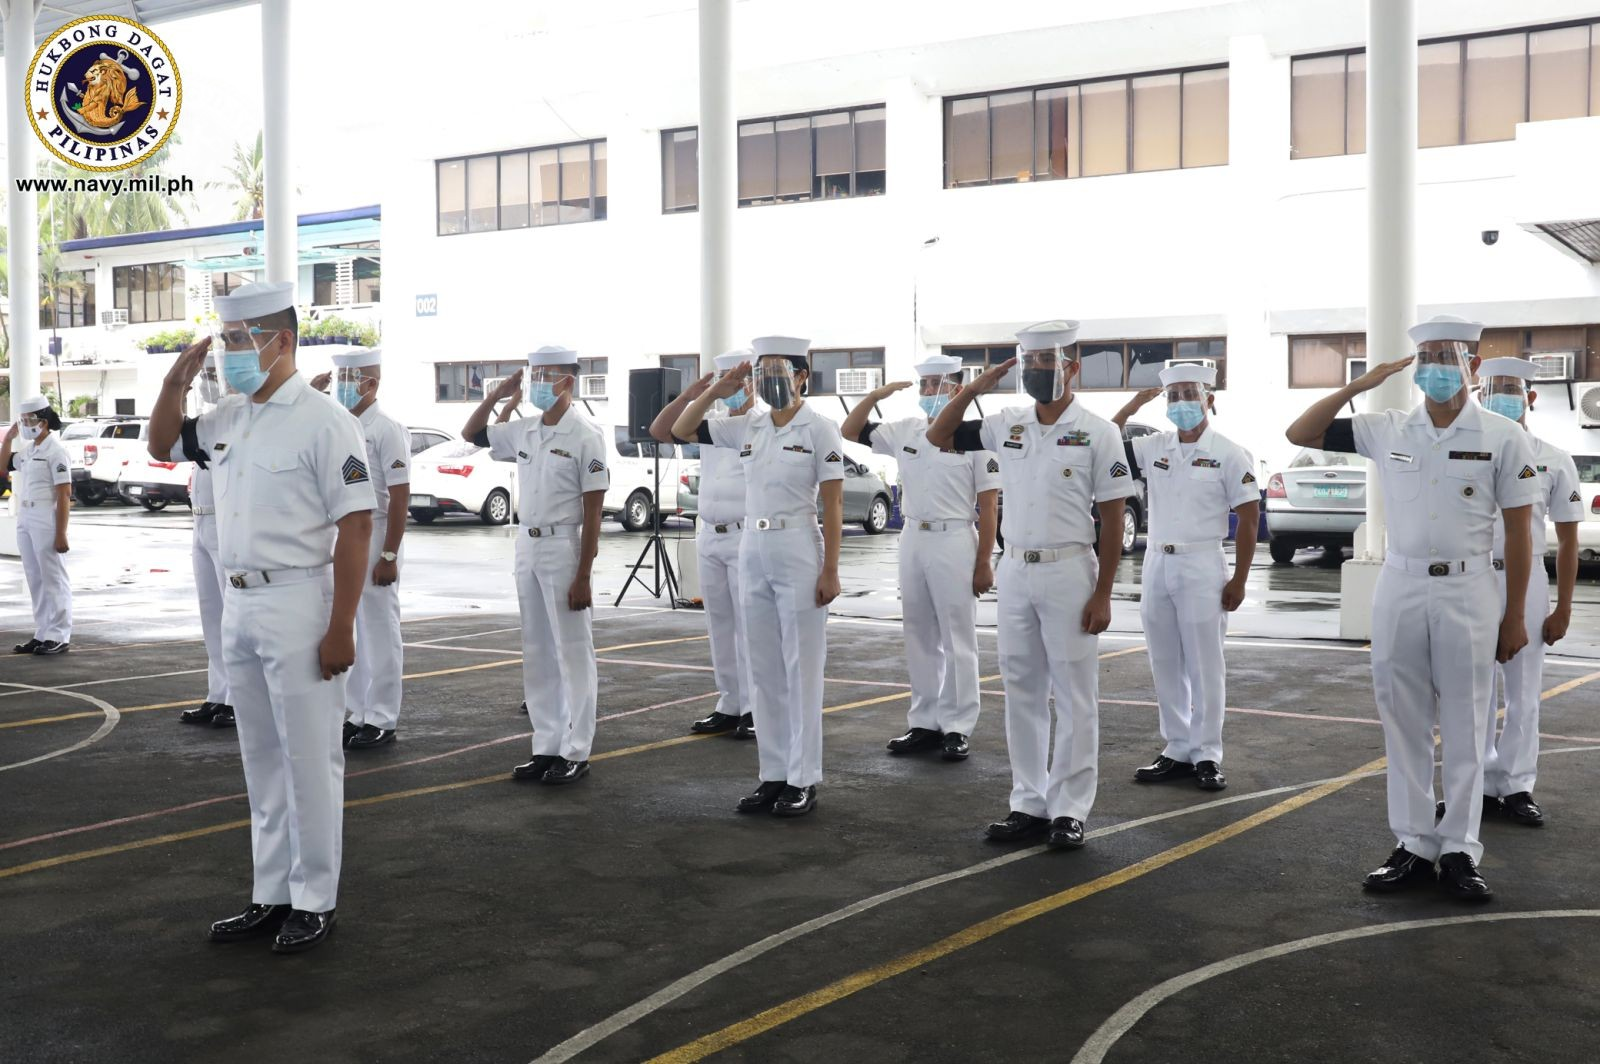 Image Title: Simultaneous Flag lowering Ceremony and Symbolic Removal of Mourning Band